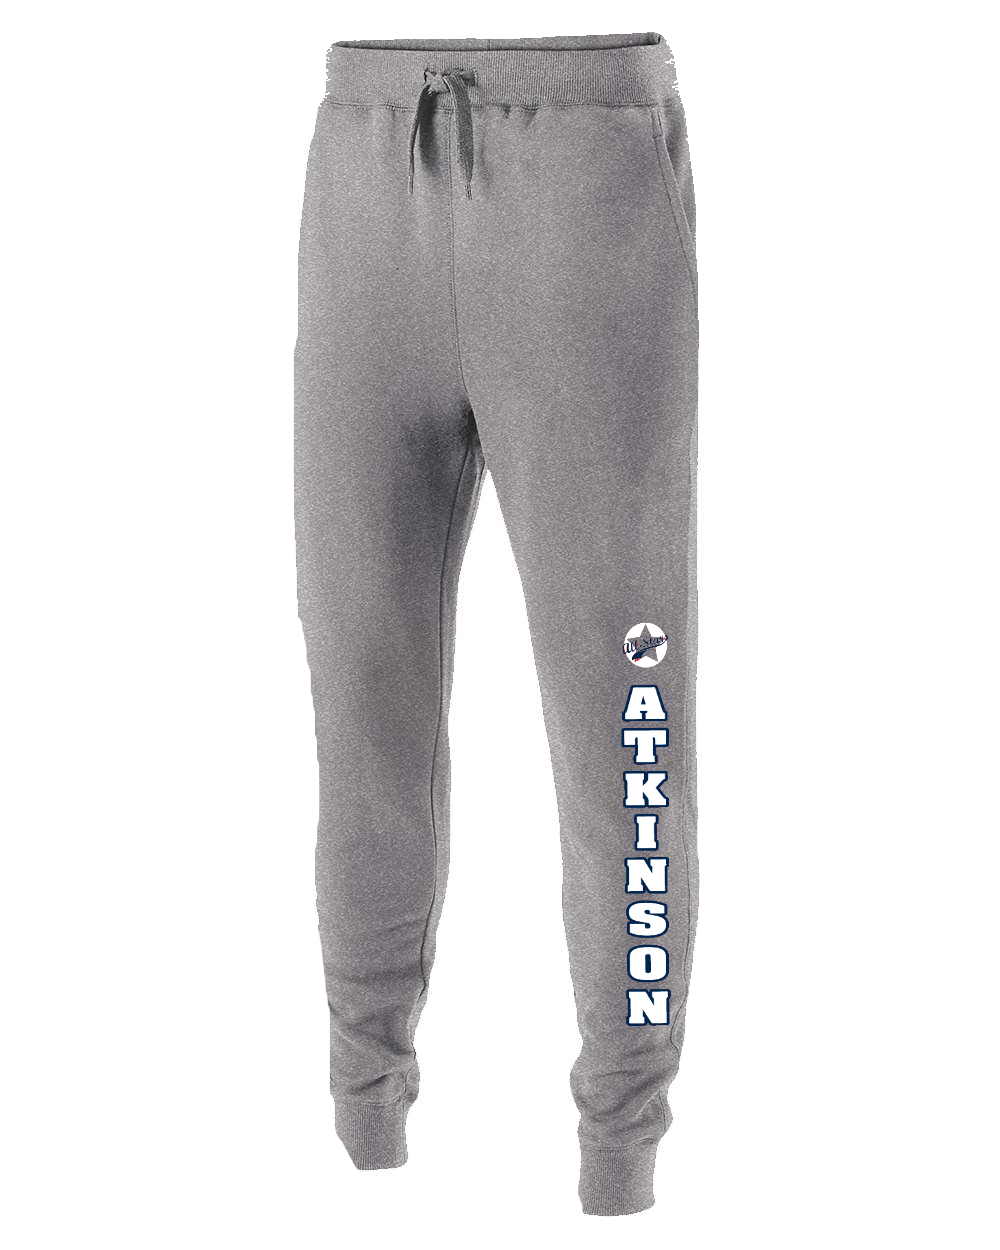 Atkinson Joggers (Youth sizes only)